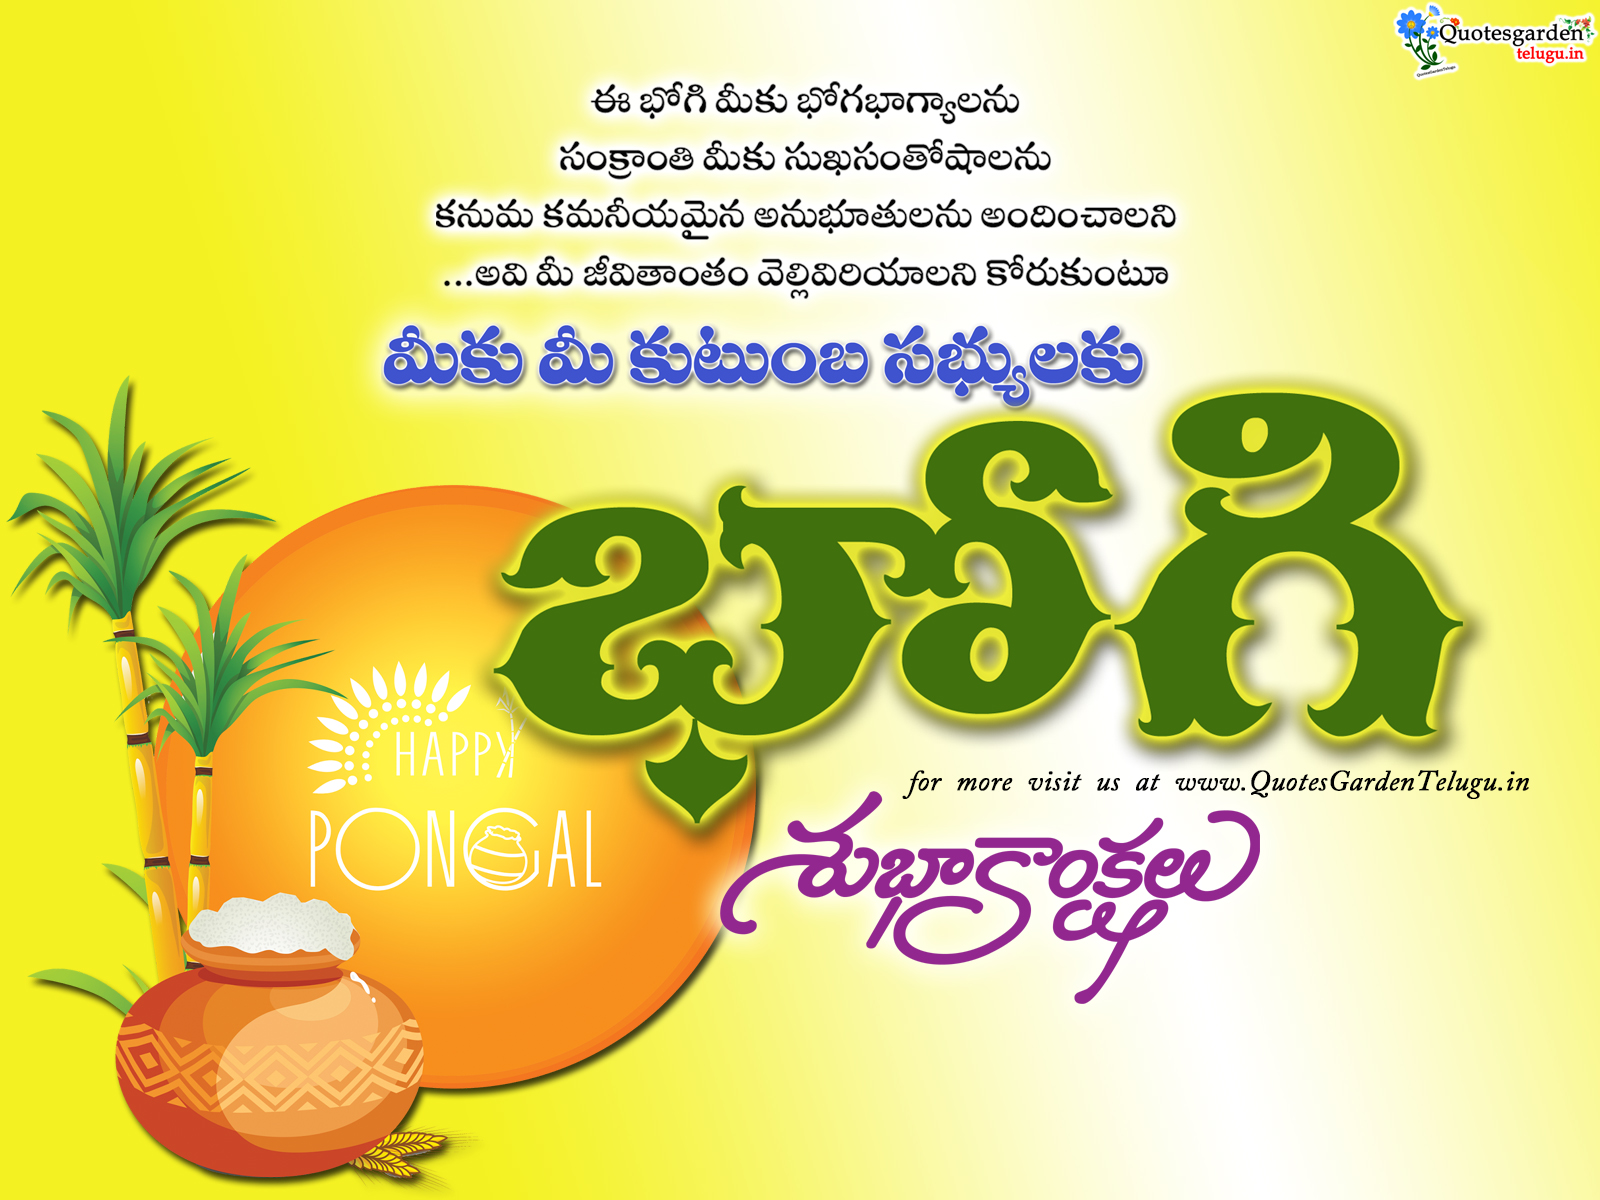 Telugu Bhogi images quotes messages